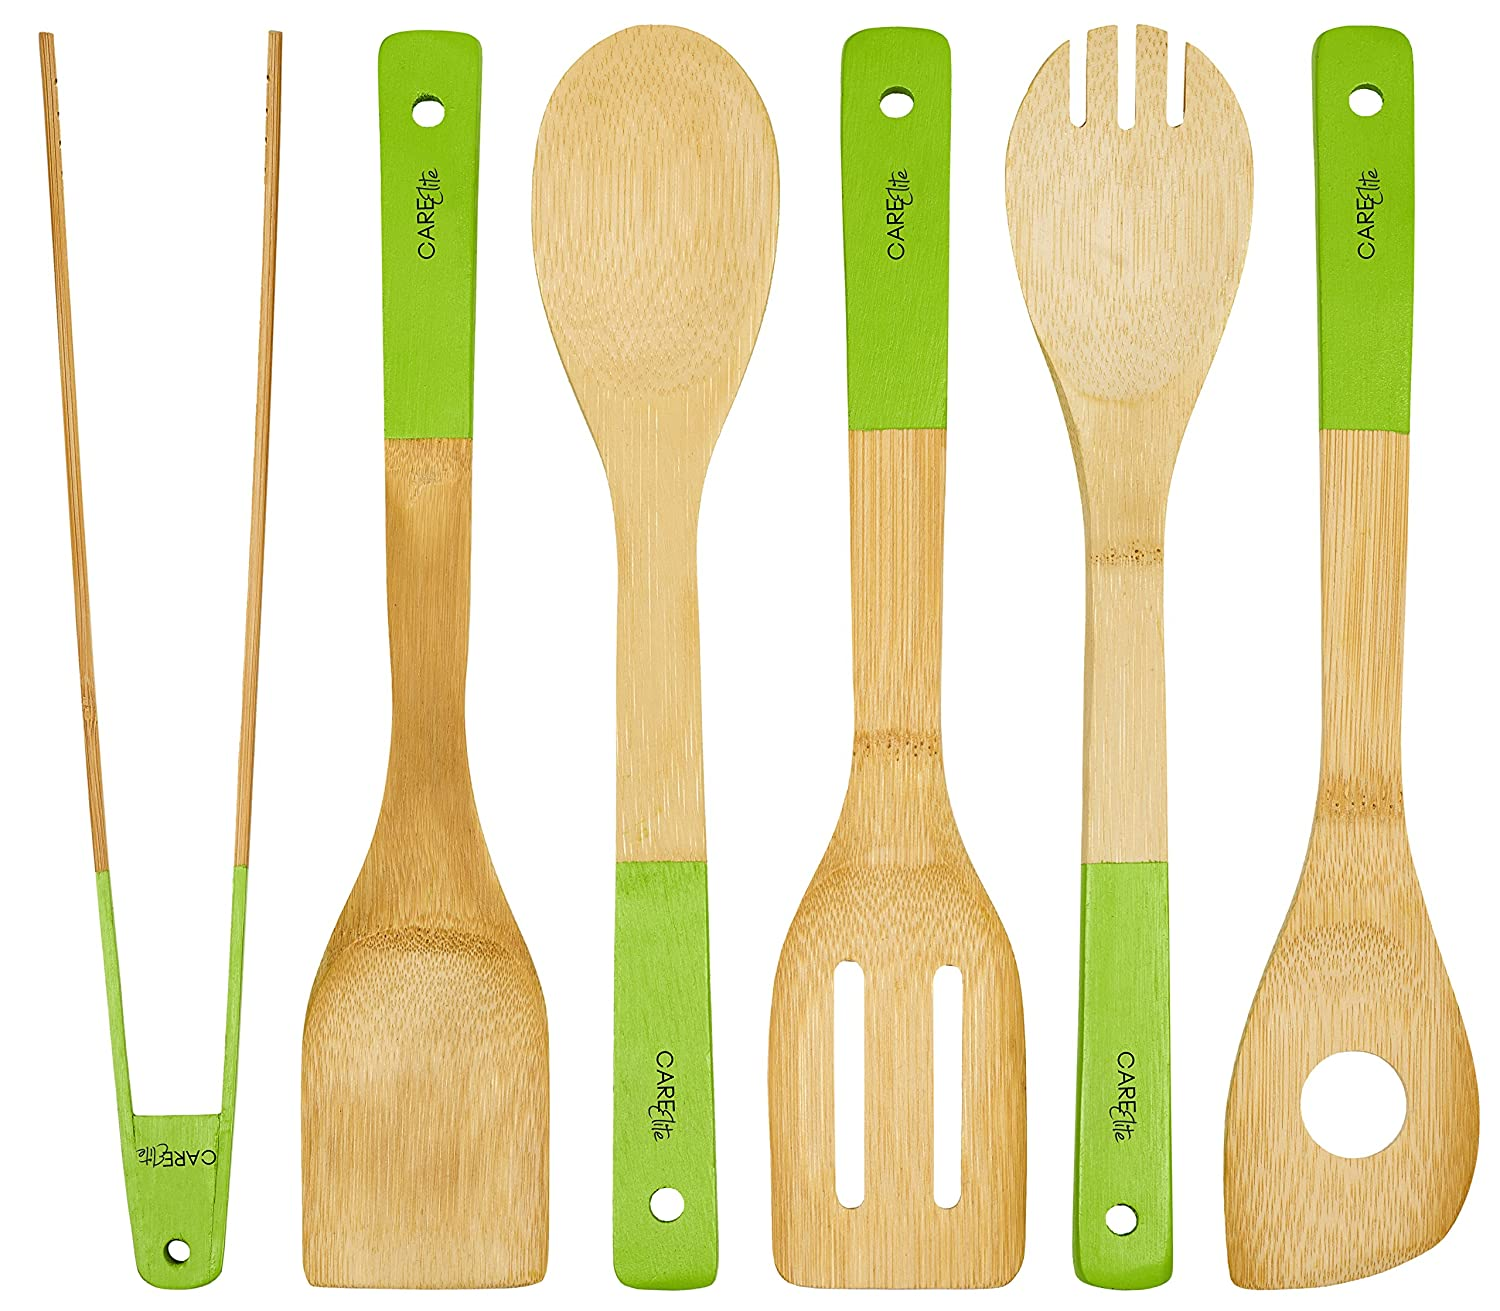 Set of 6 wooden kitchen set made of bamboo wood x267b sustainability green kitchen utensils x272e with wooden spoon heat resistant kitchen utensil